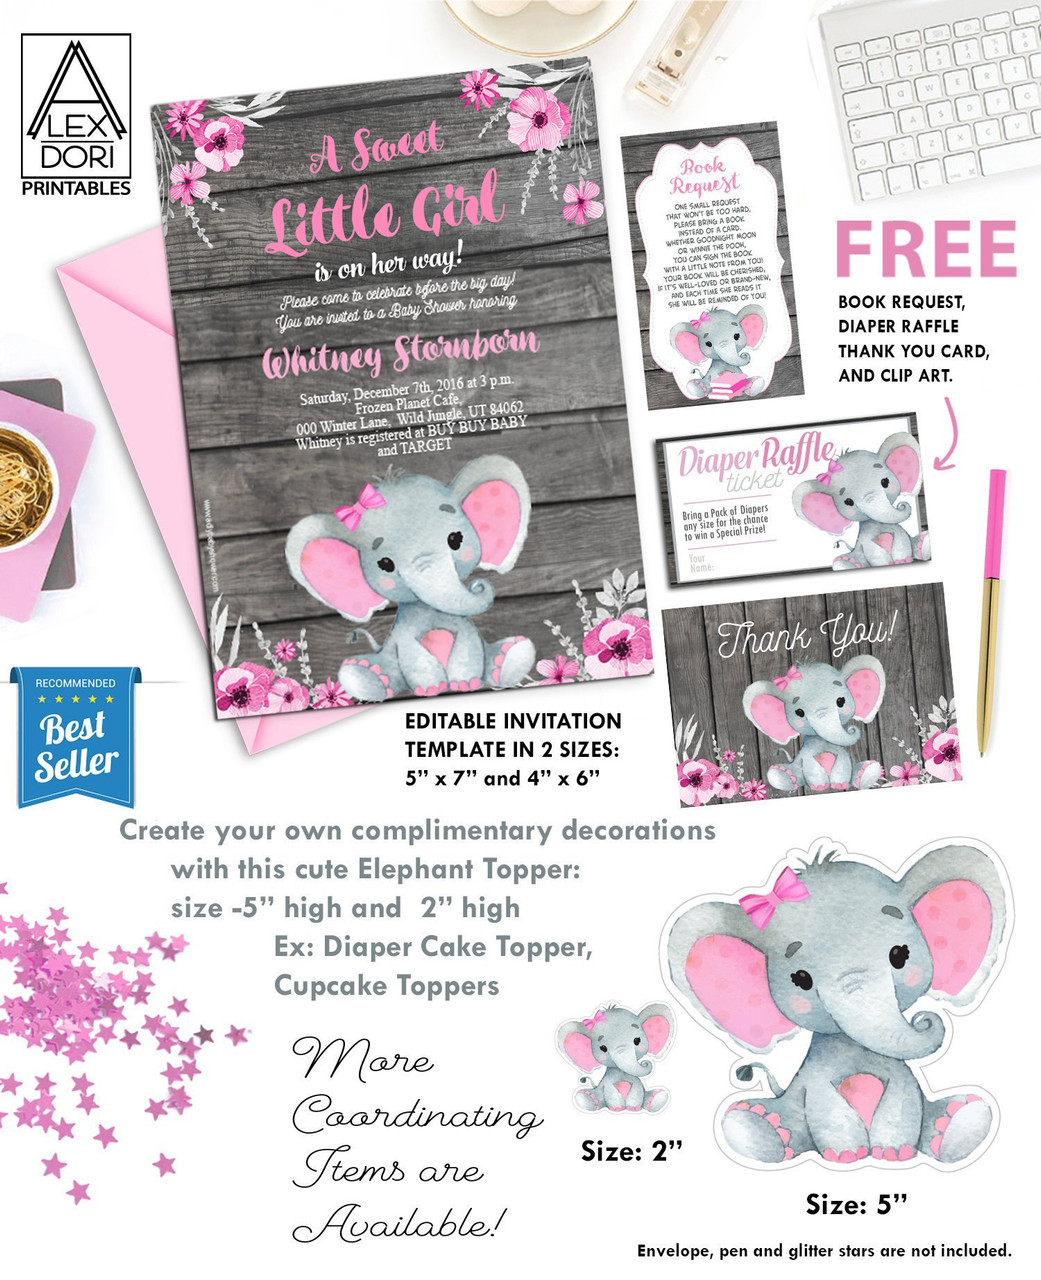 Baby Shower Invitation Pink Girl Elephant With Flowers Rustic Invitation On Wooden Background